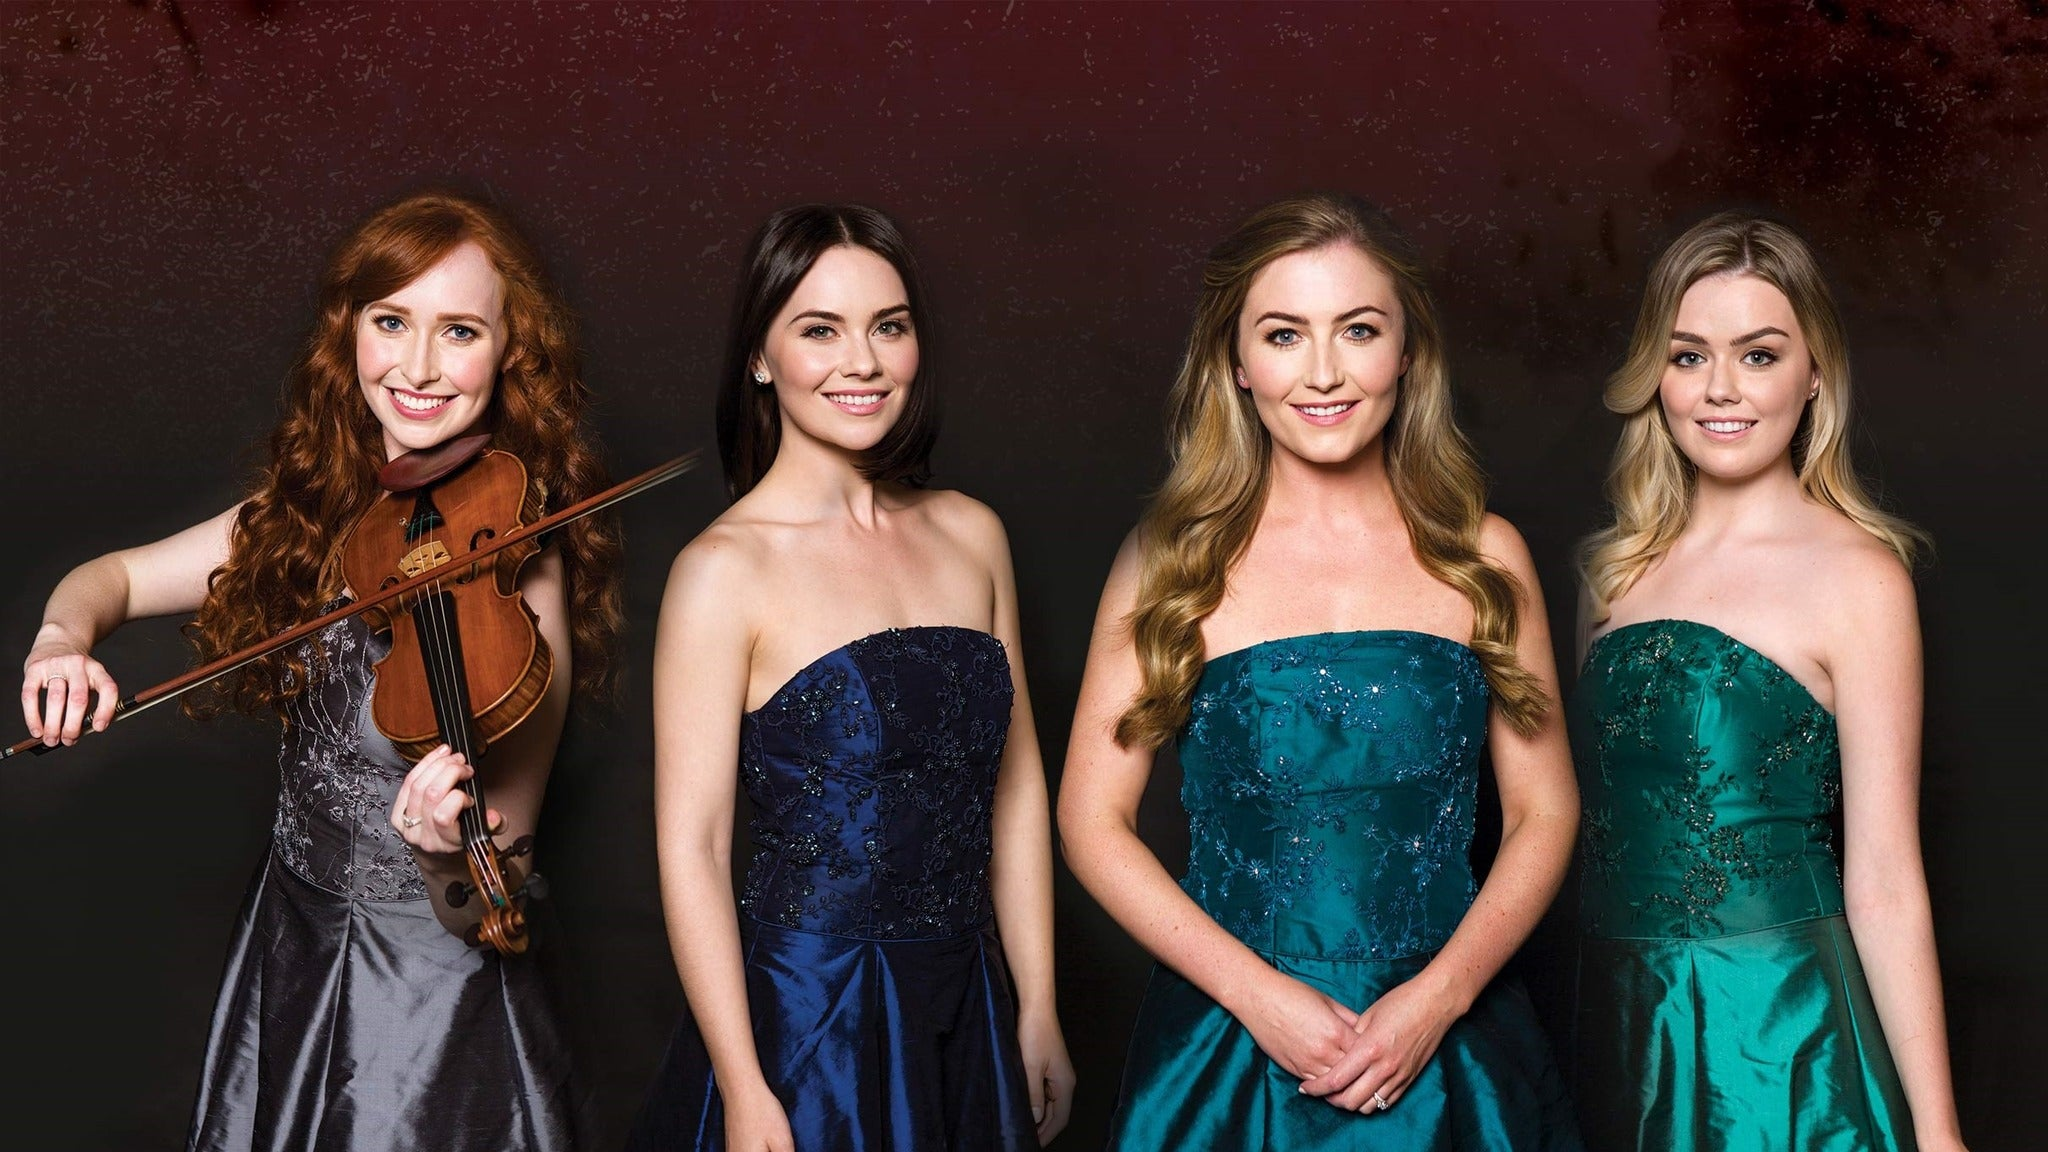 Celtic Woman at Community Theatre-NJ - Morristown, NJ 07960